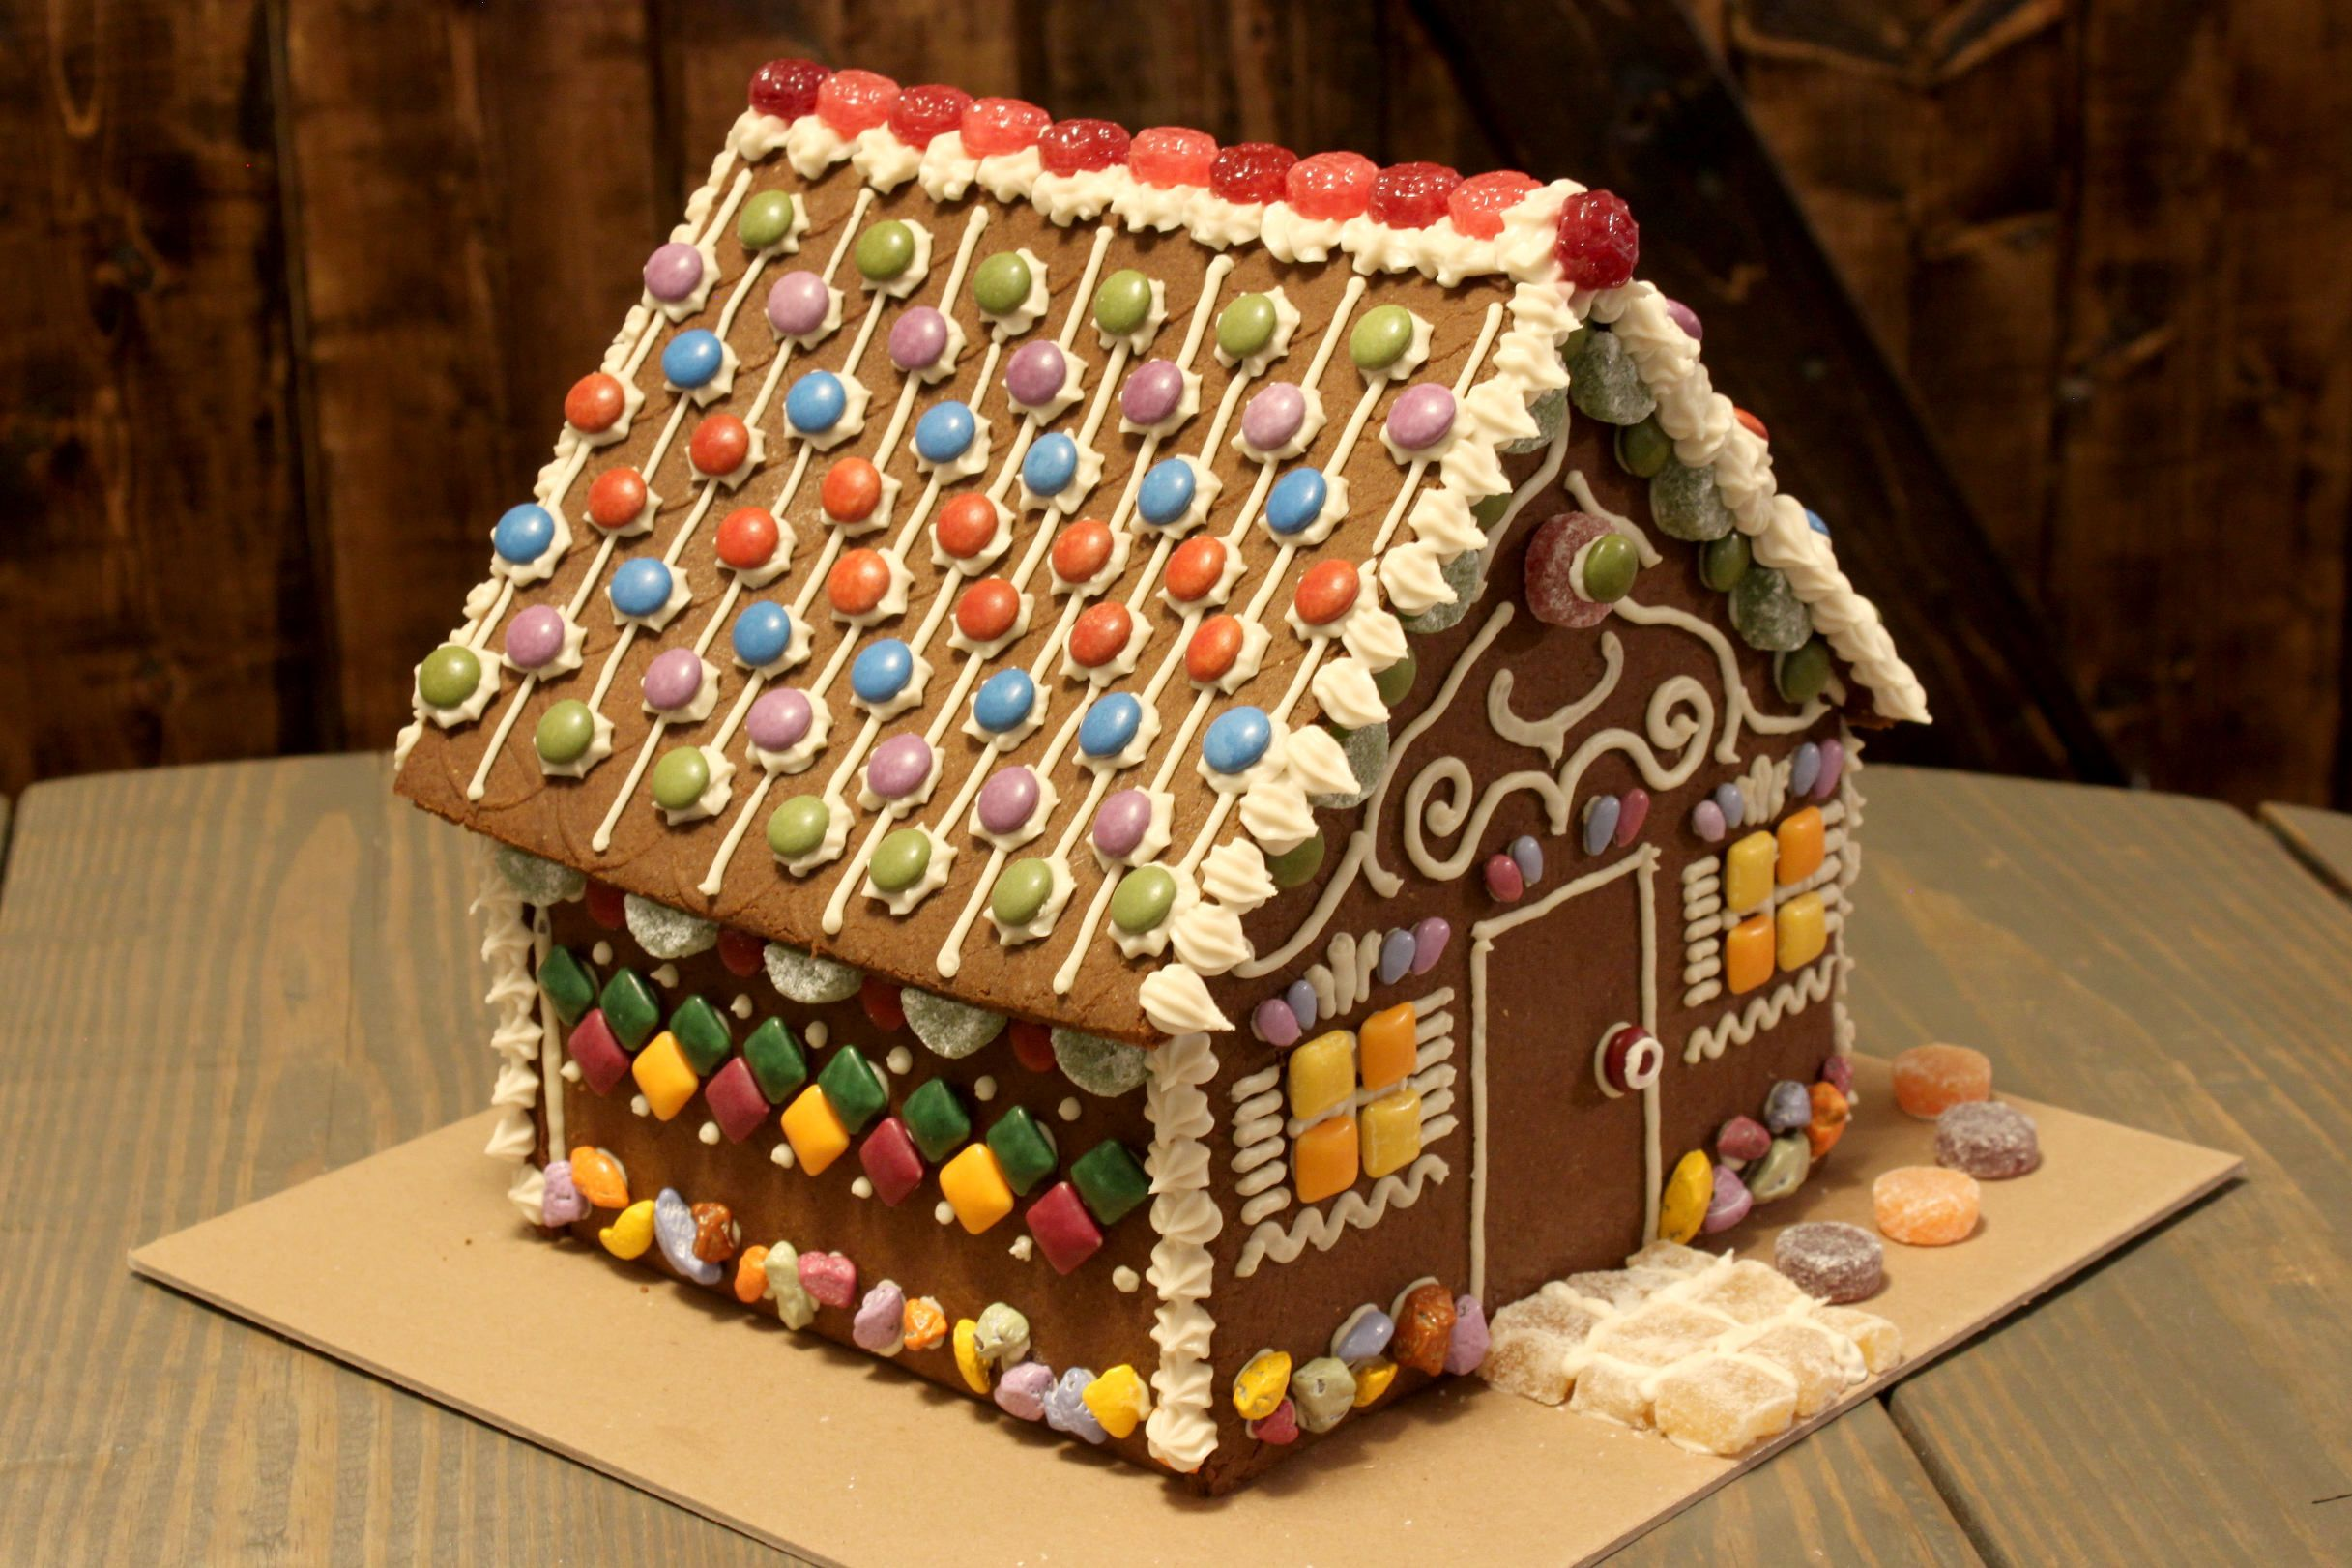 Pin by S&H5 on food 食べ物 Gingerbread house kits